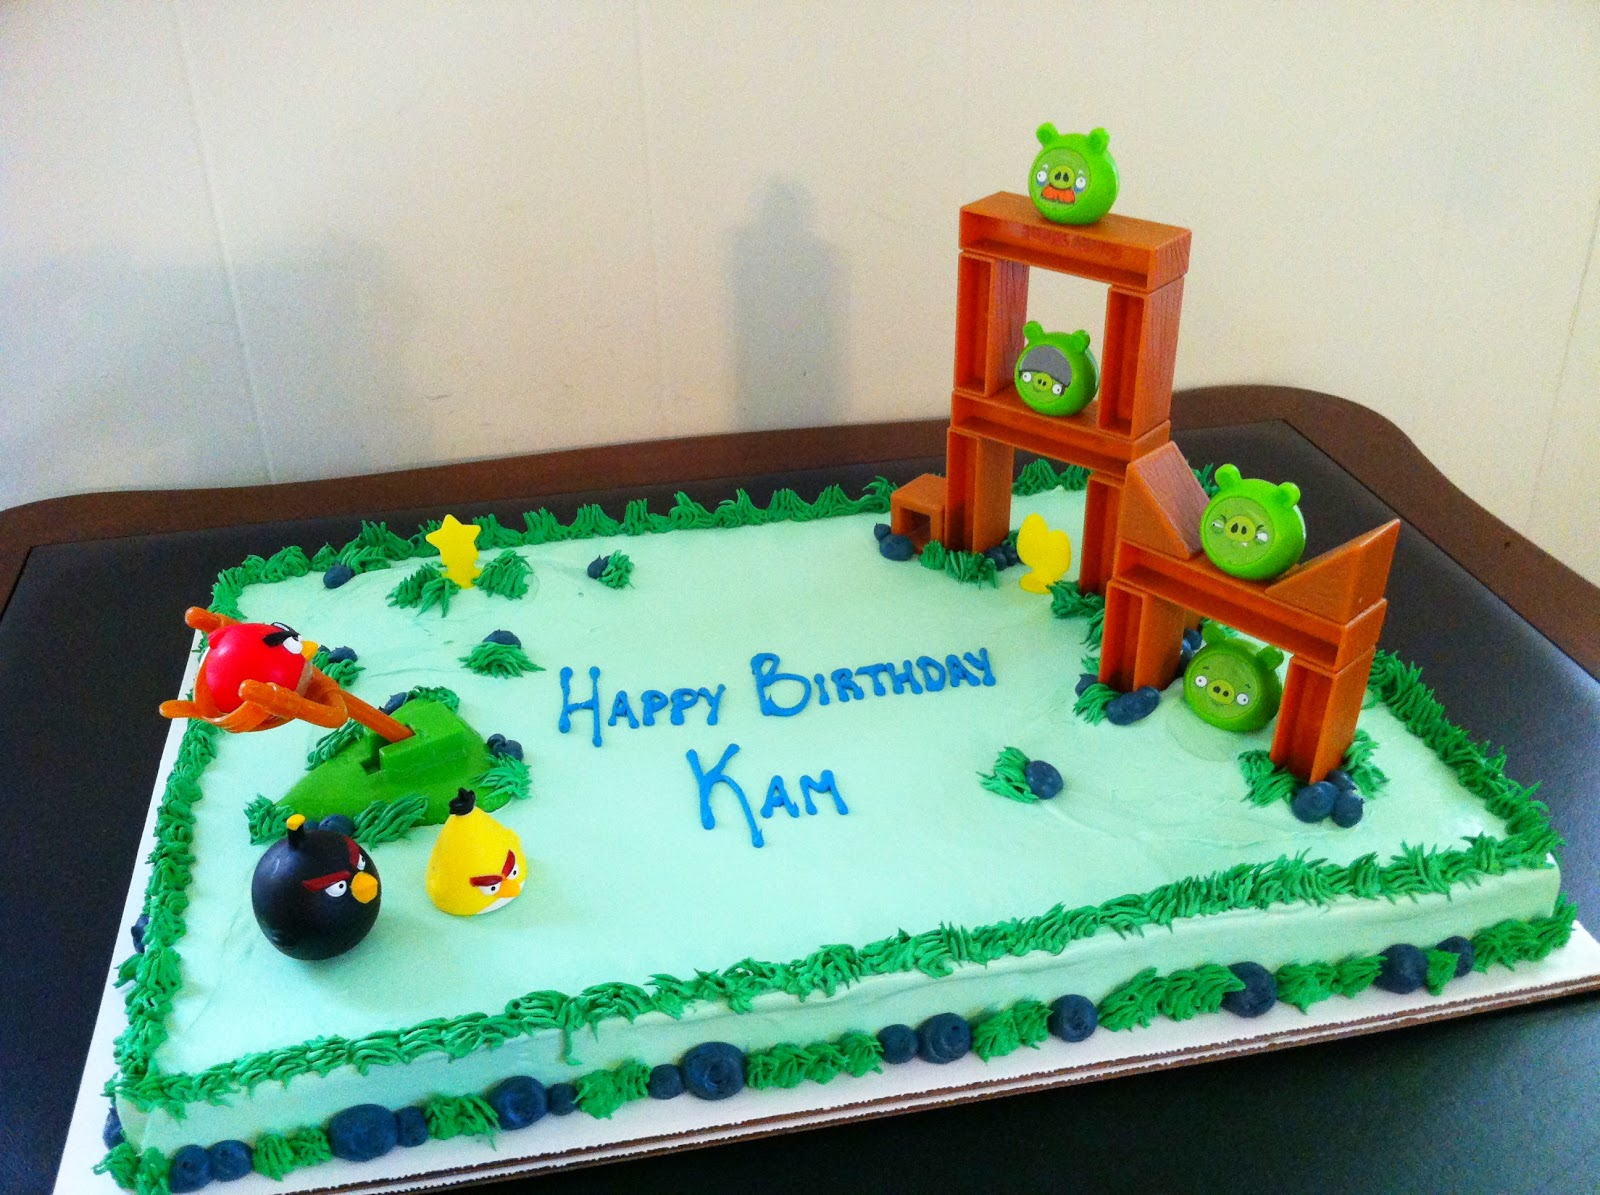 Cake Deco Mania : Balloons Decorations For Birthday At Home ~ Birthday Cake ...